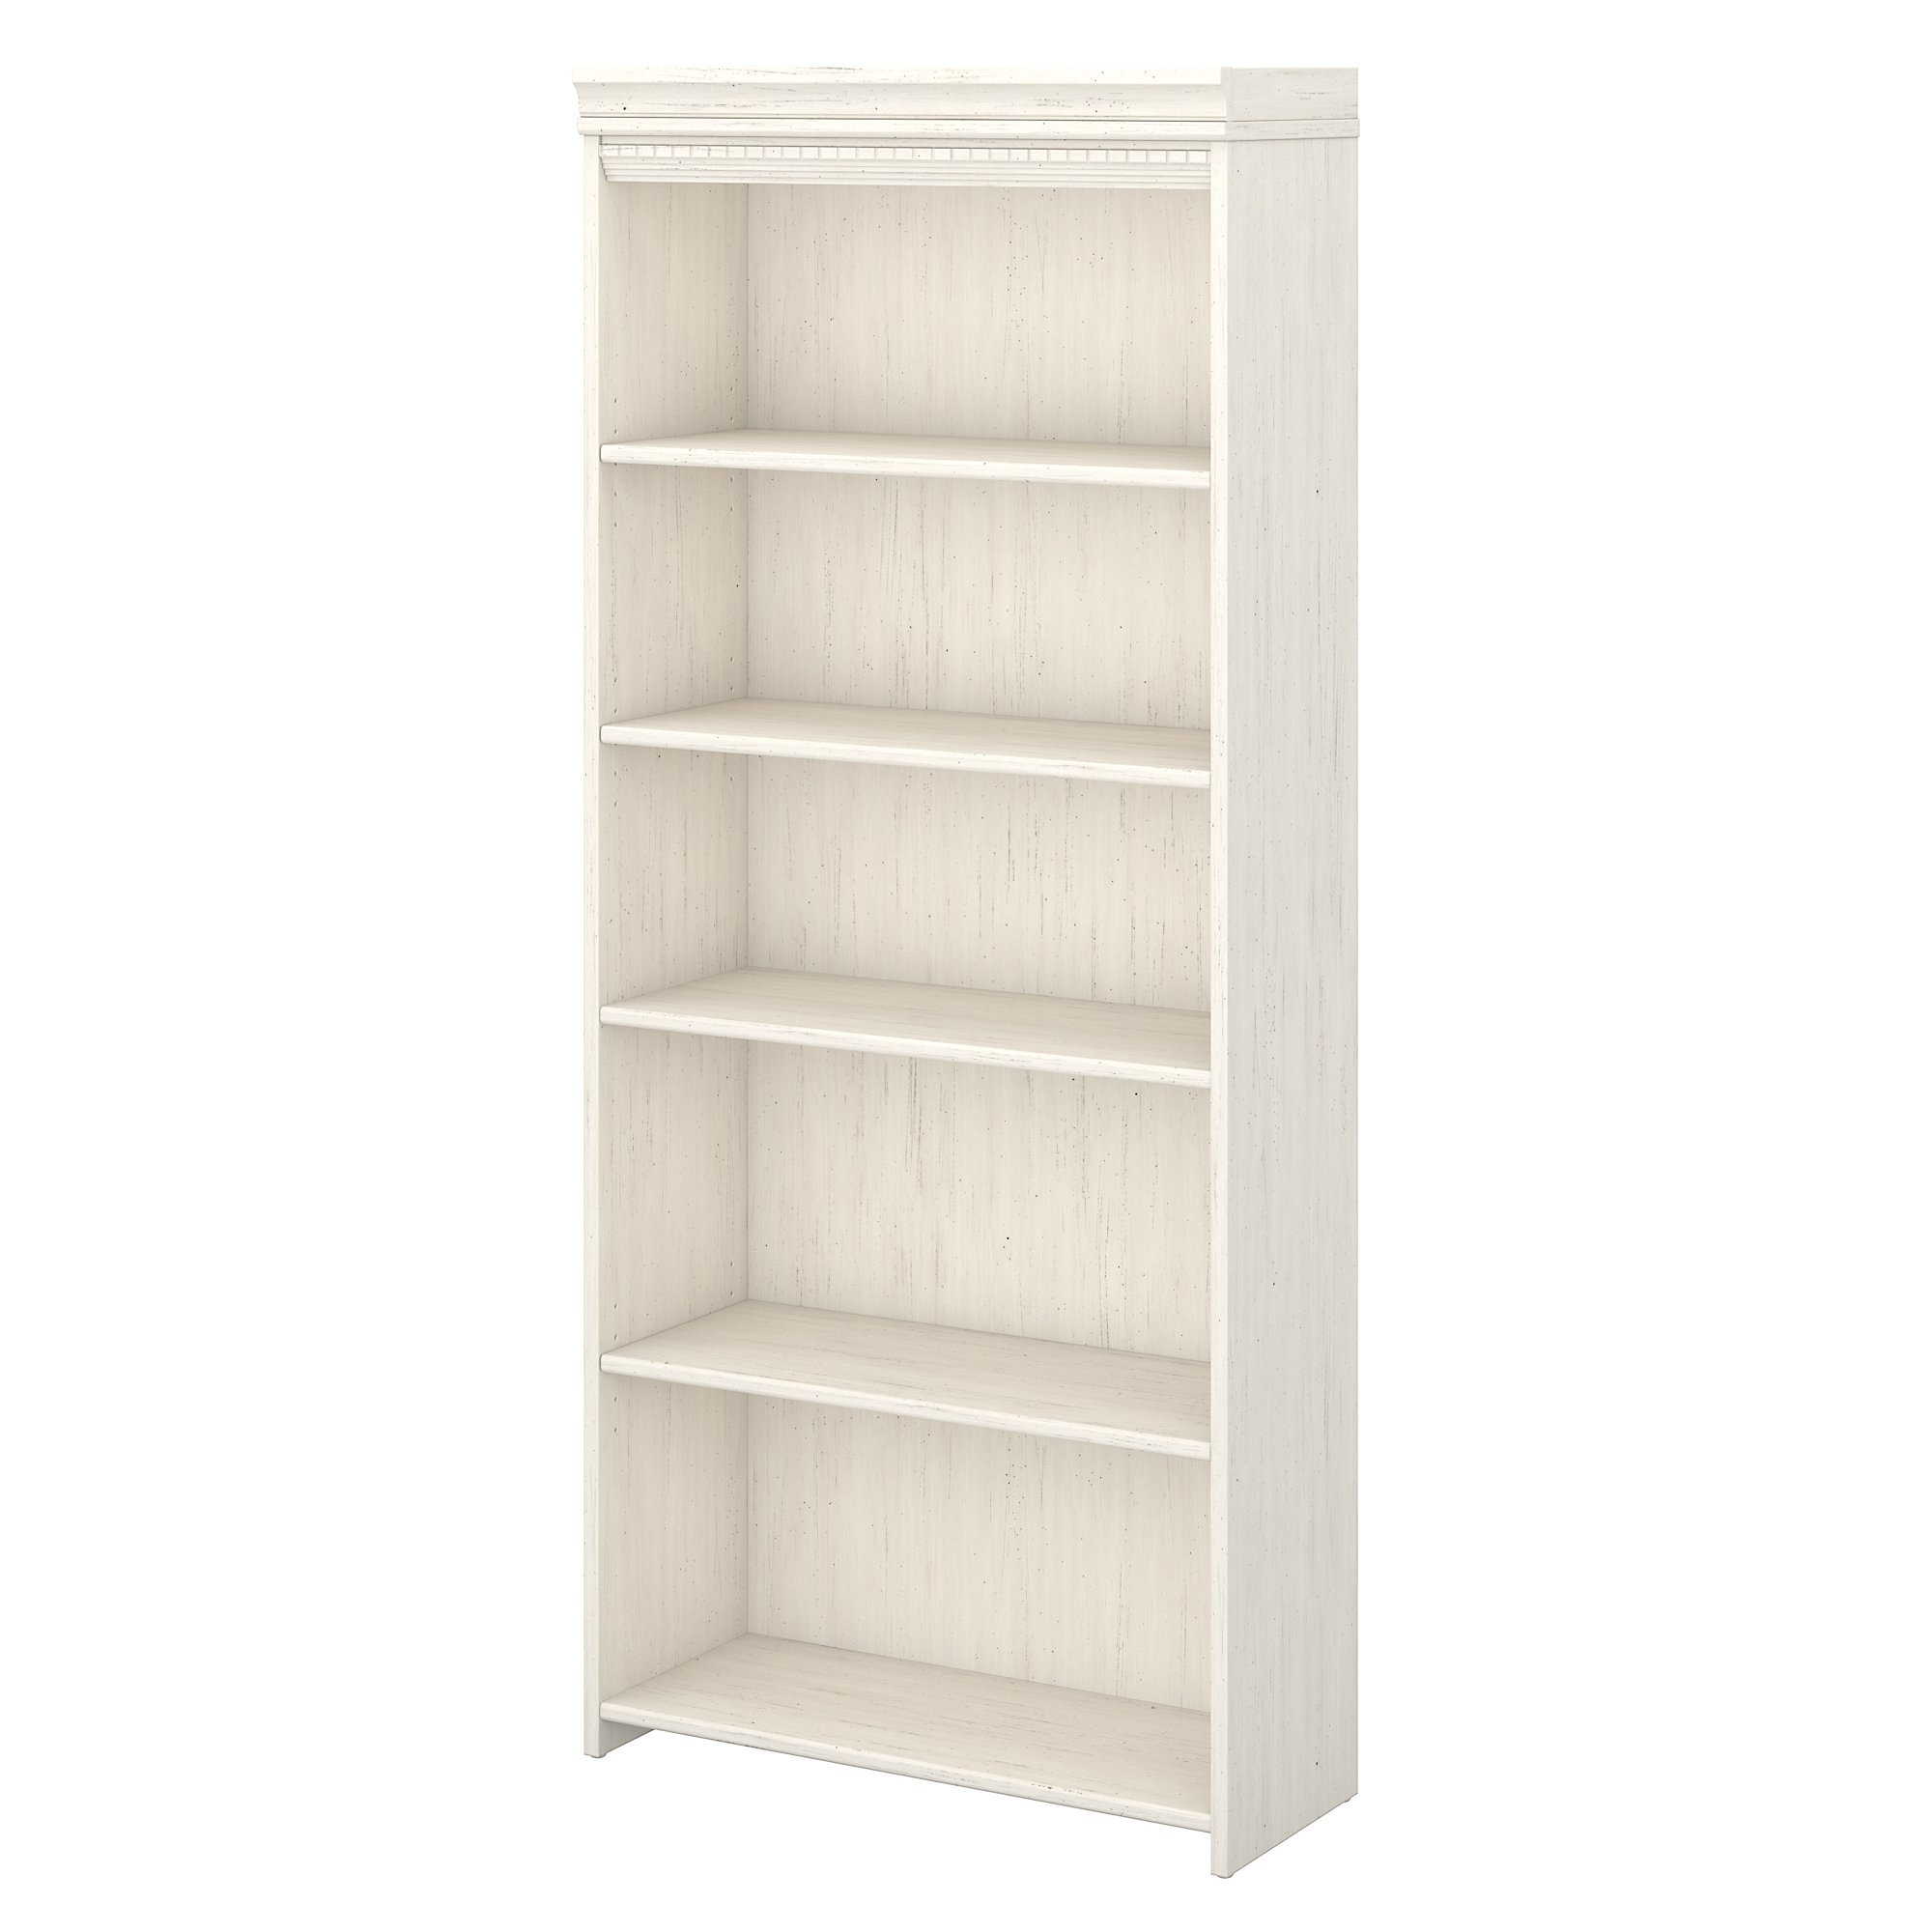 Most Popular Morrell Standard Bookcases Within Resaca Standard Bookcase (View 12 of 20)